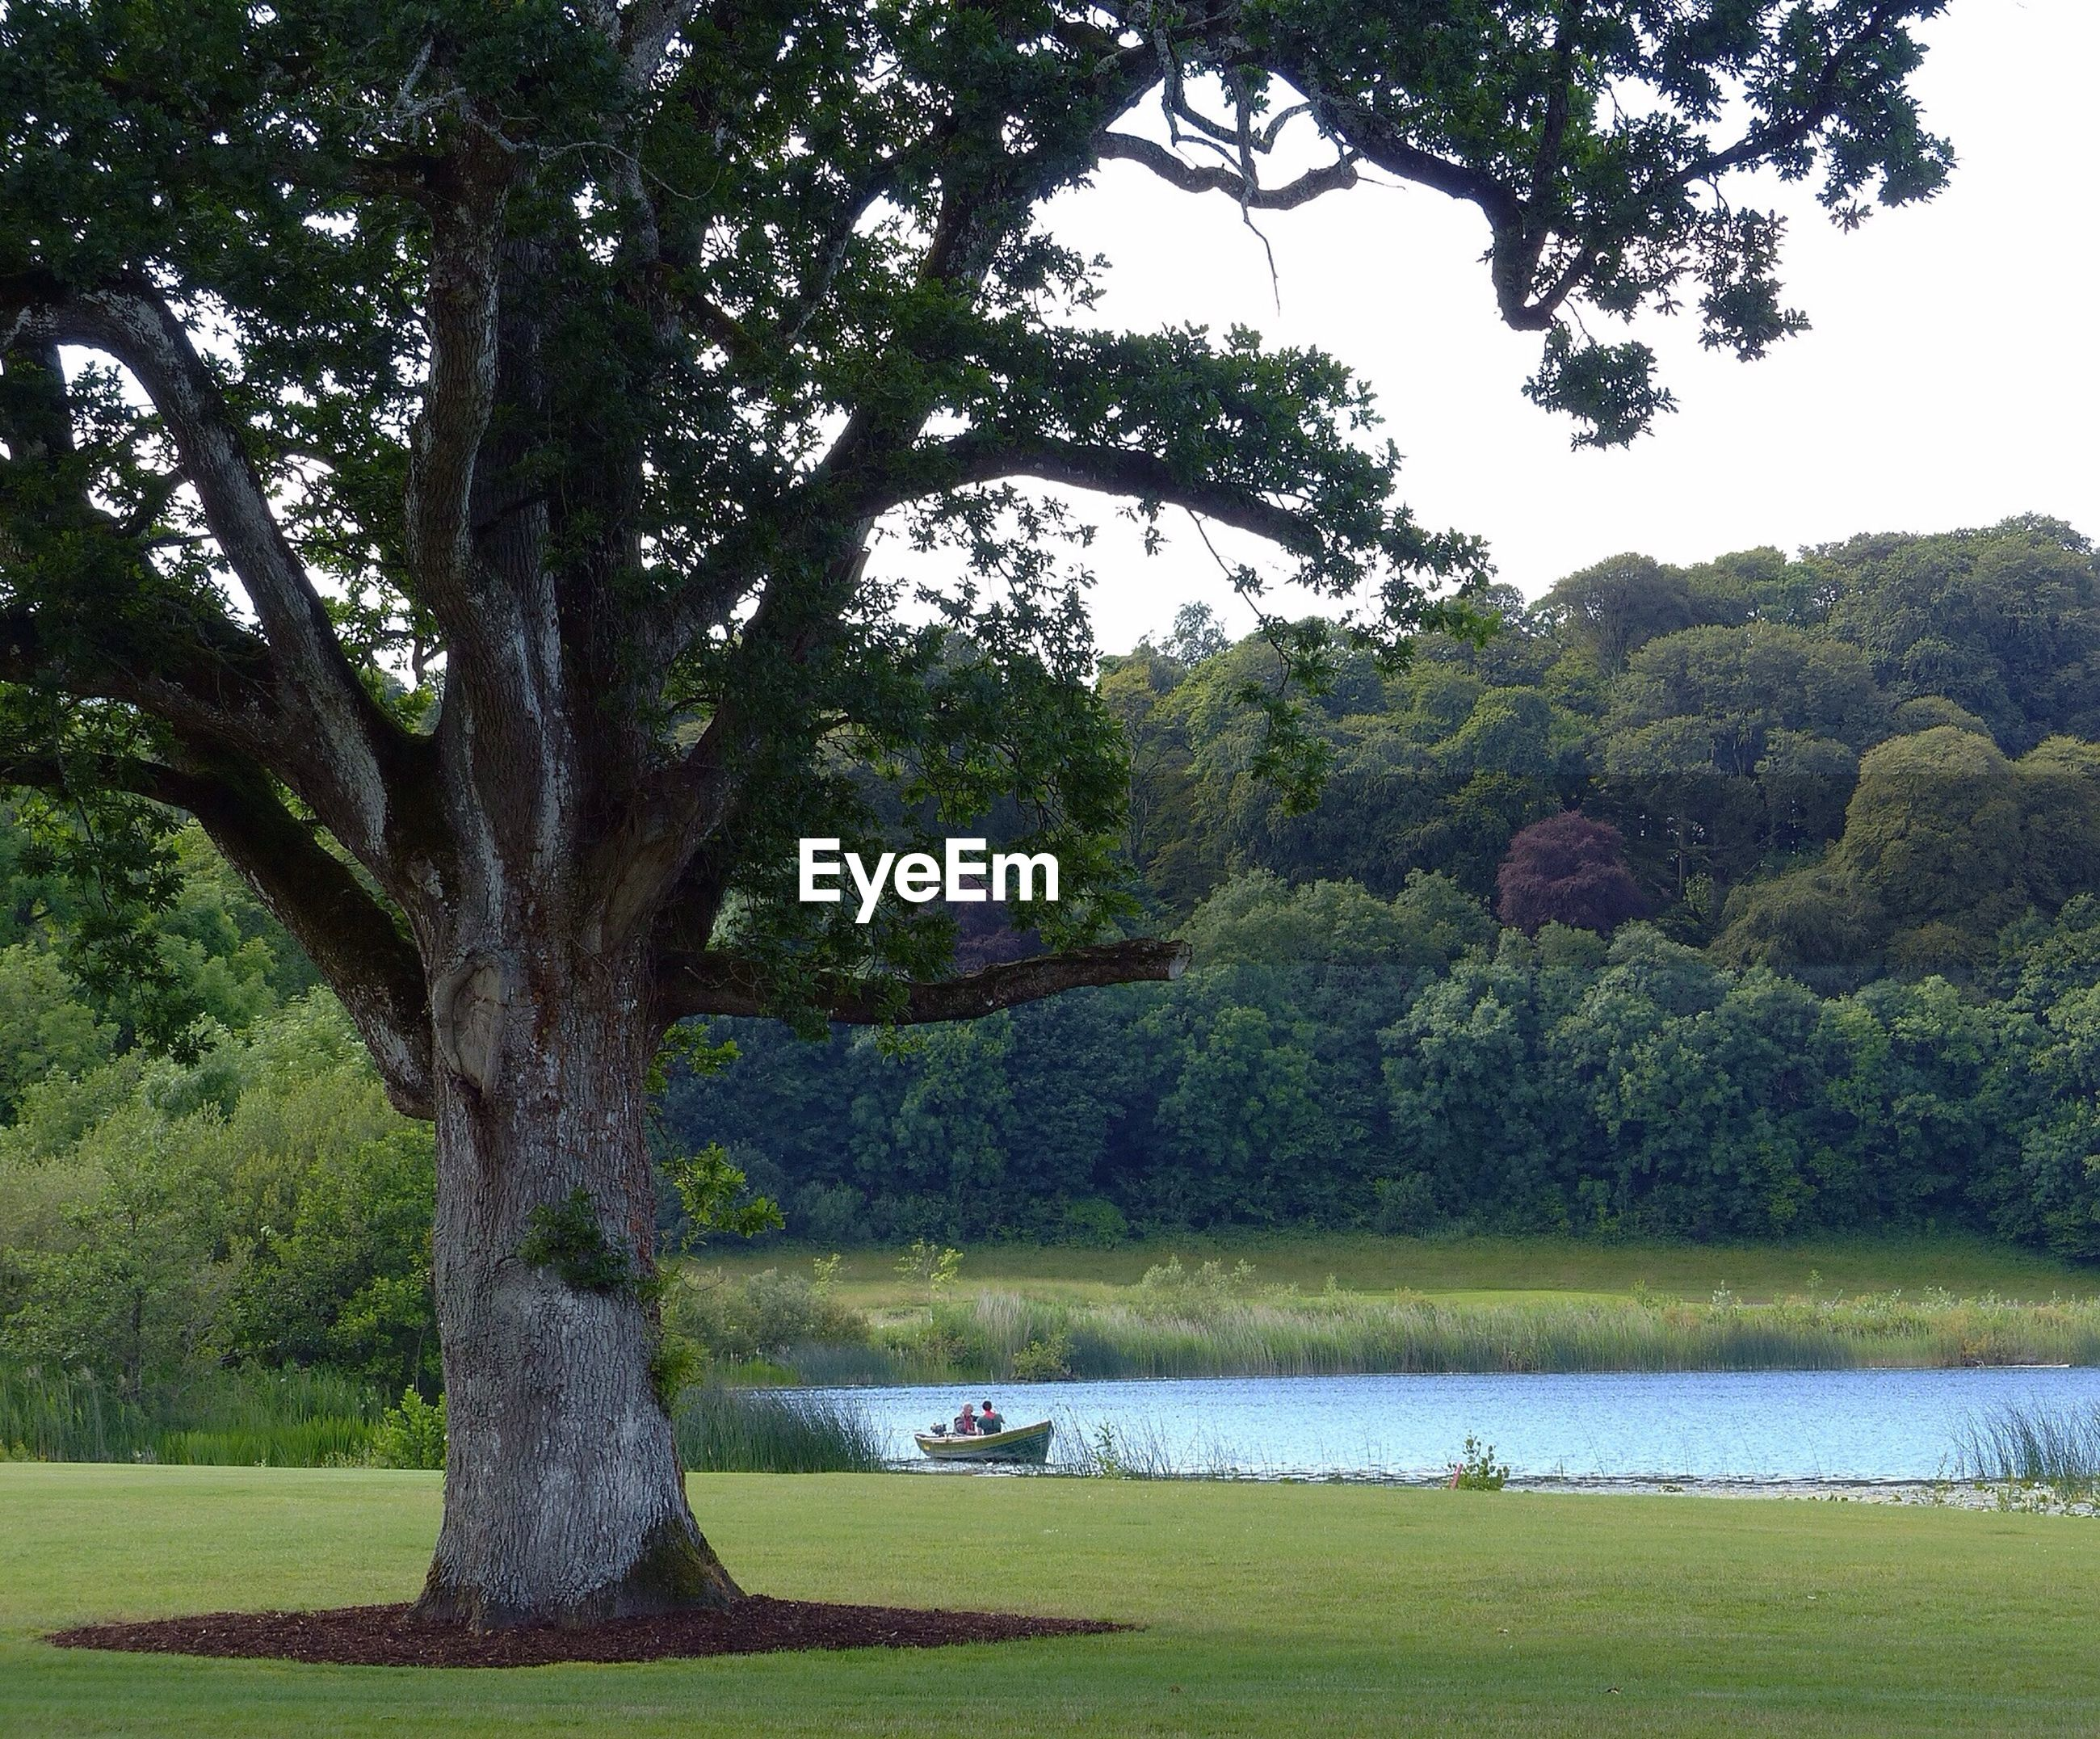 tree, tranquil scene, tranquility, water, beauty in nature, scenics, growth, grass, green color, lake, nature, park - man made space, sky, branch, idyllic, tree trunk, landscape, river, park, lakeshore